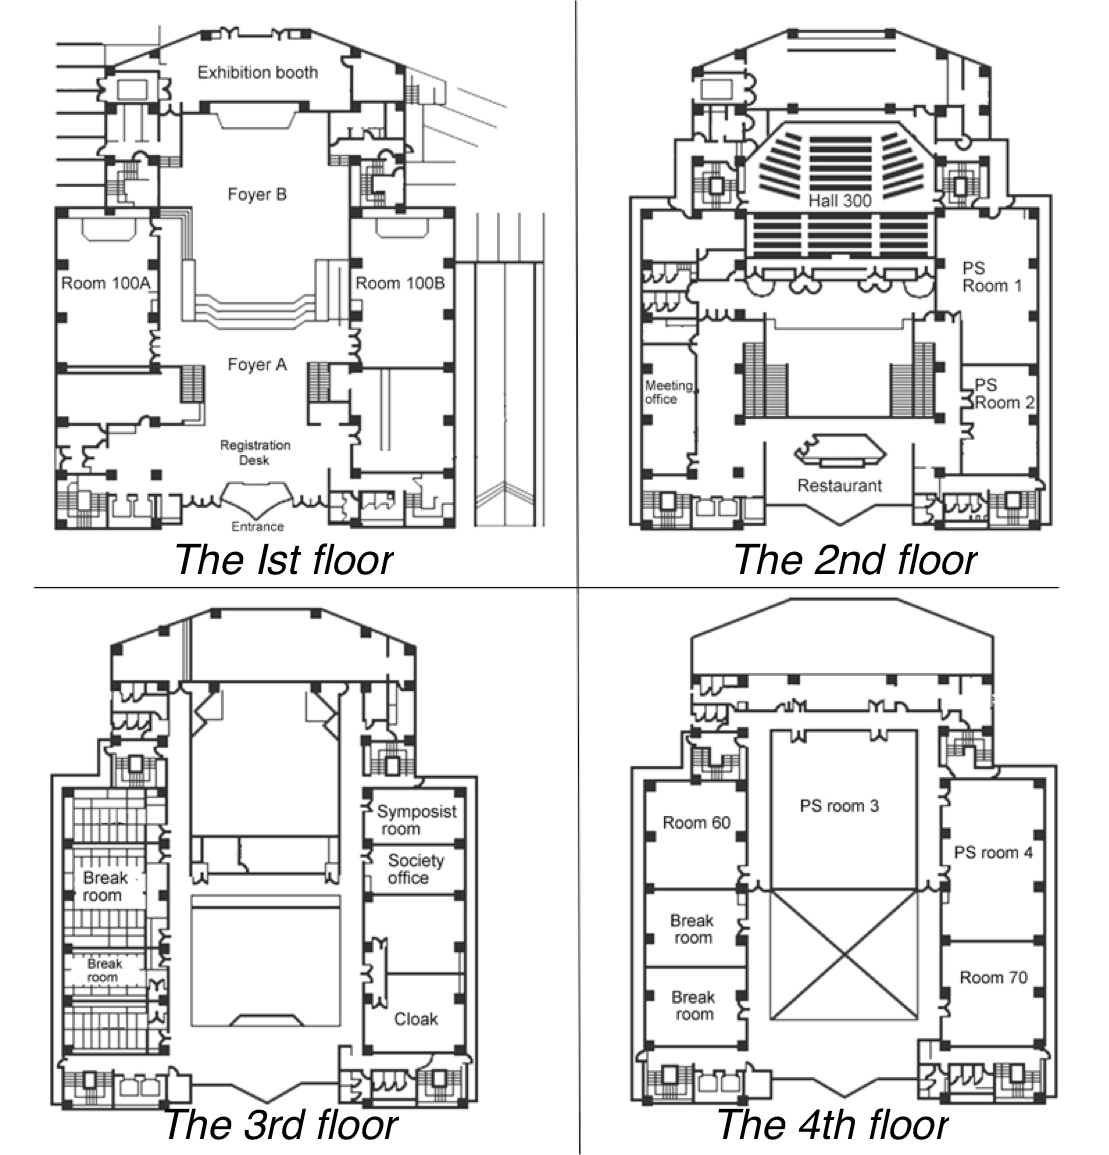 2015Venue_roommap